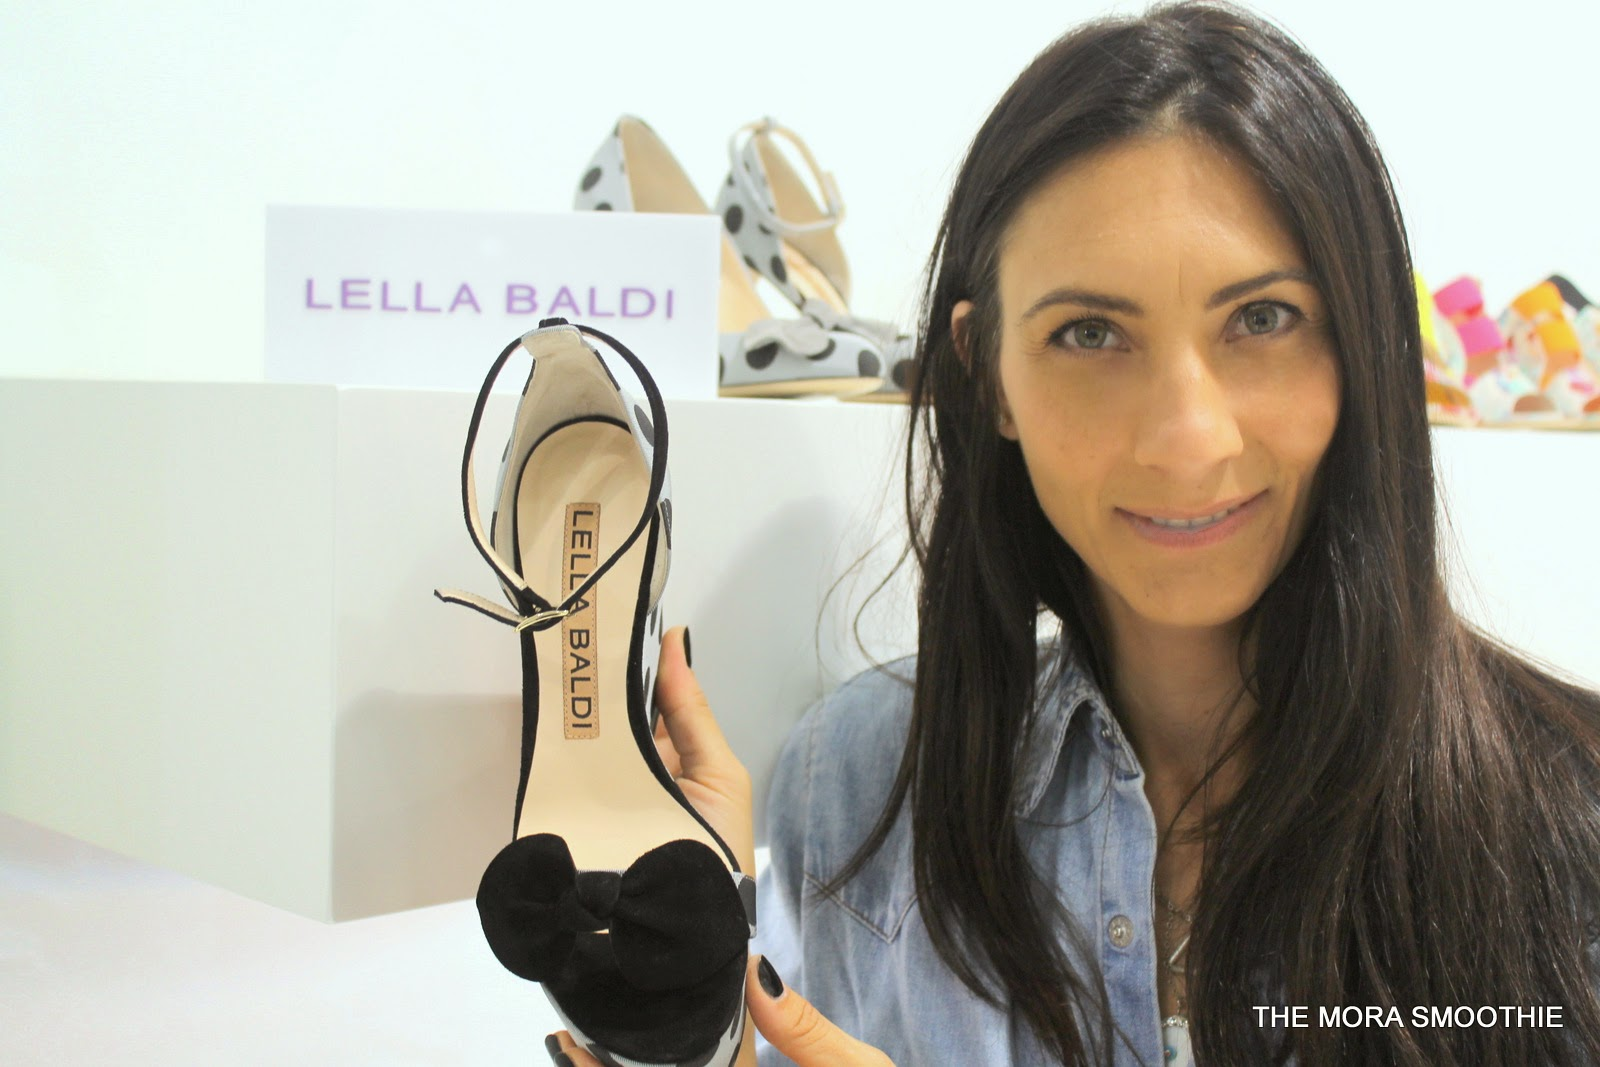 themorasmoothie, shoes, lella baldi, micam, fashion, fashionblog, fashionblogger, blogger, italianblog, bloggeritaliane, outfit, look, fashion shoes, ss15, blogger, bloggeritaliane,